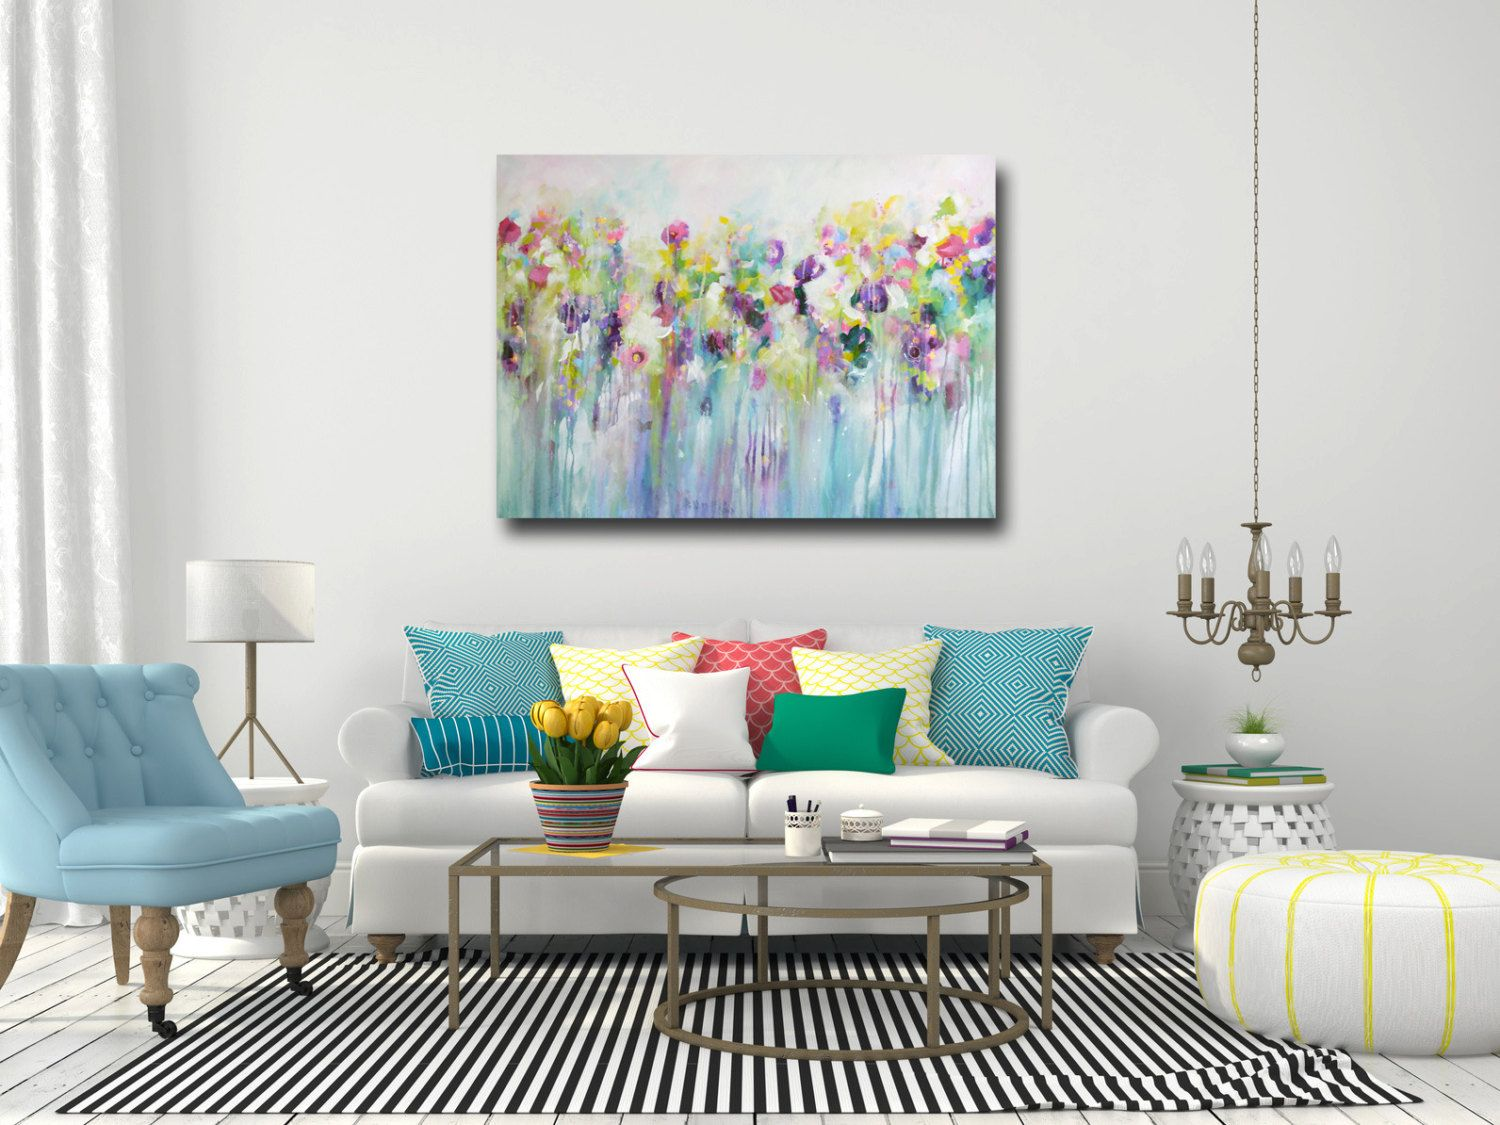 large wall art, canvas art, abstract floral canvas print, giclee